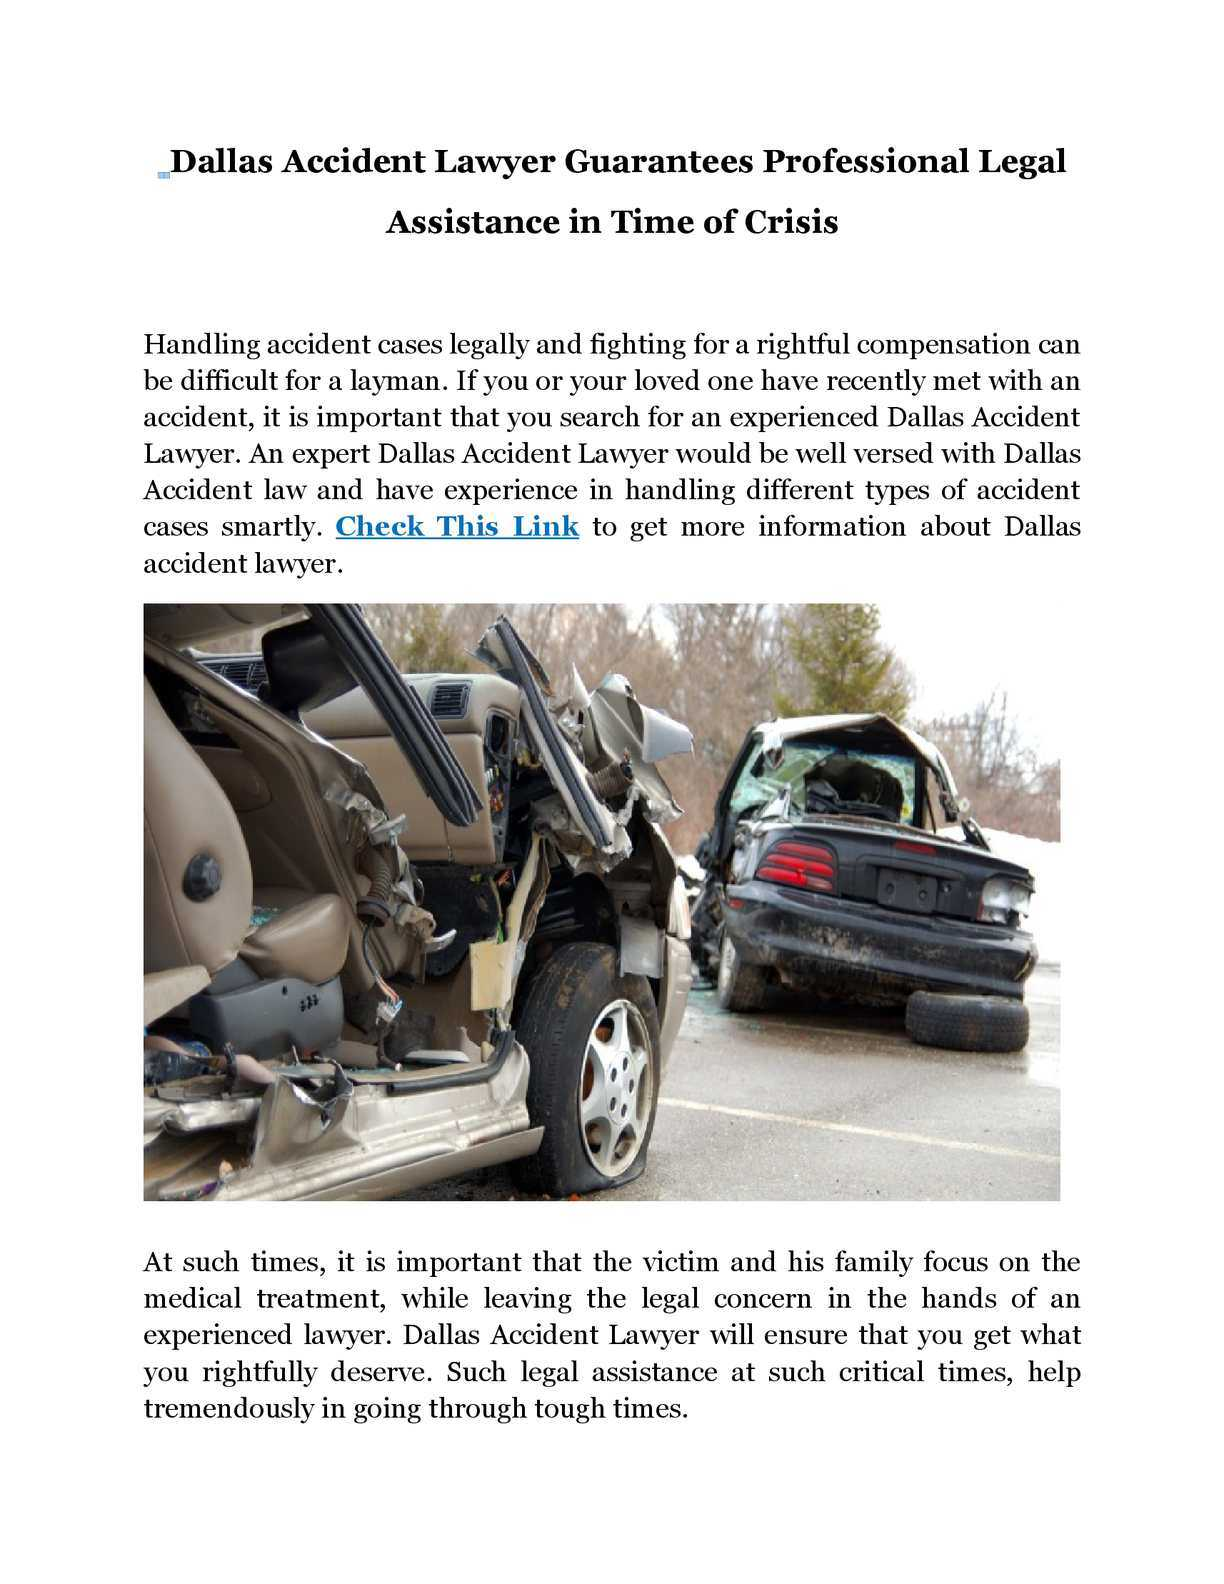 When Should You Get A Dallas Accident Lawyer